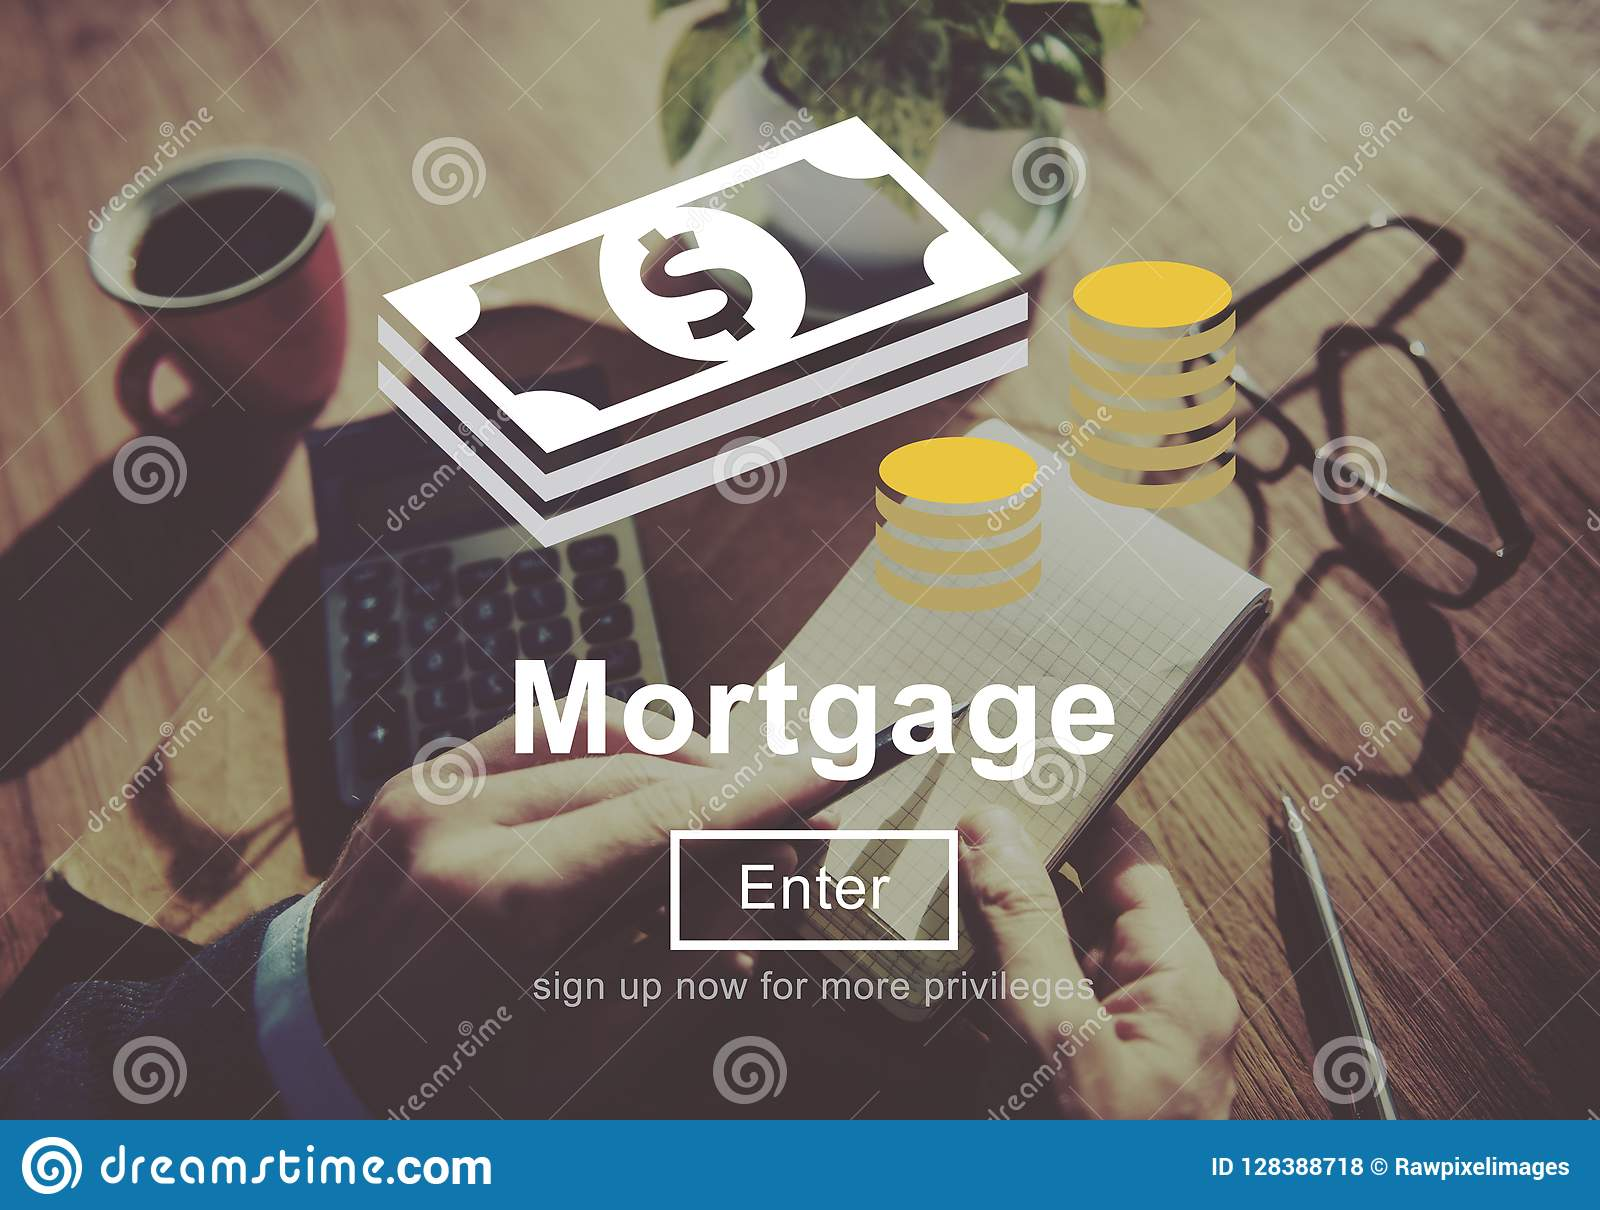 Mortgage Banking Loan Finance Money Concept